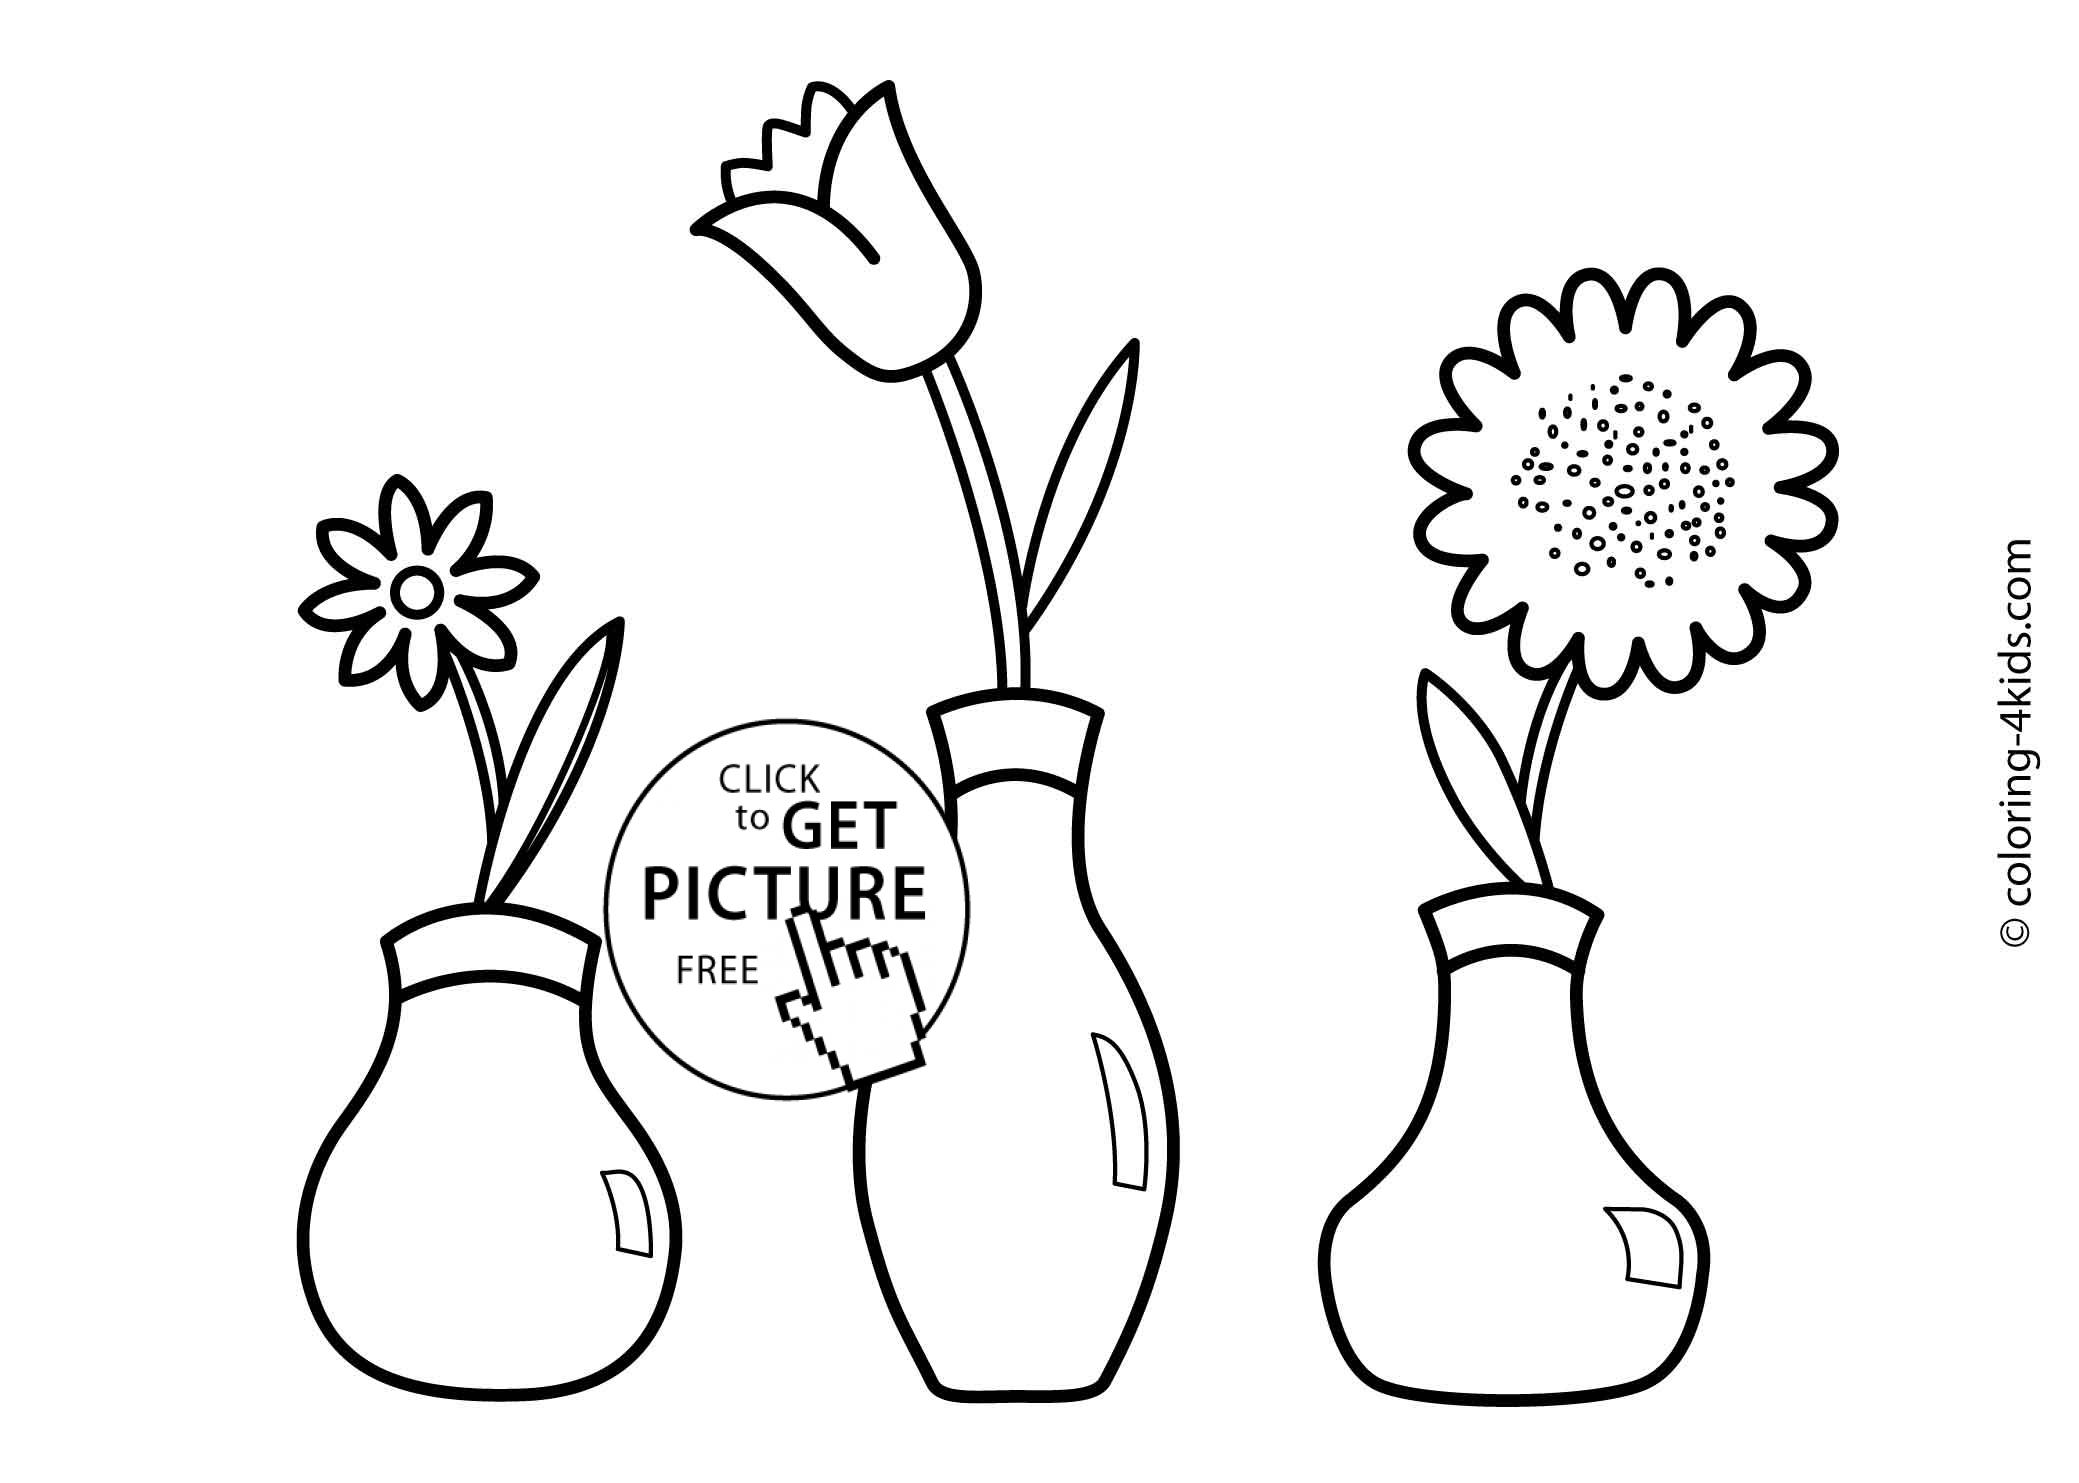 Three flowers coloring pages for kids, printable, 4